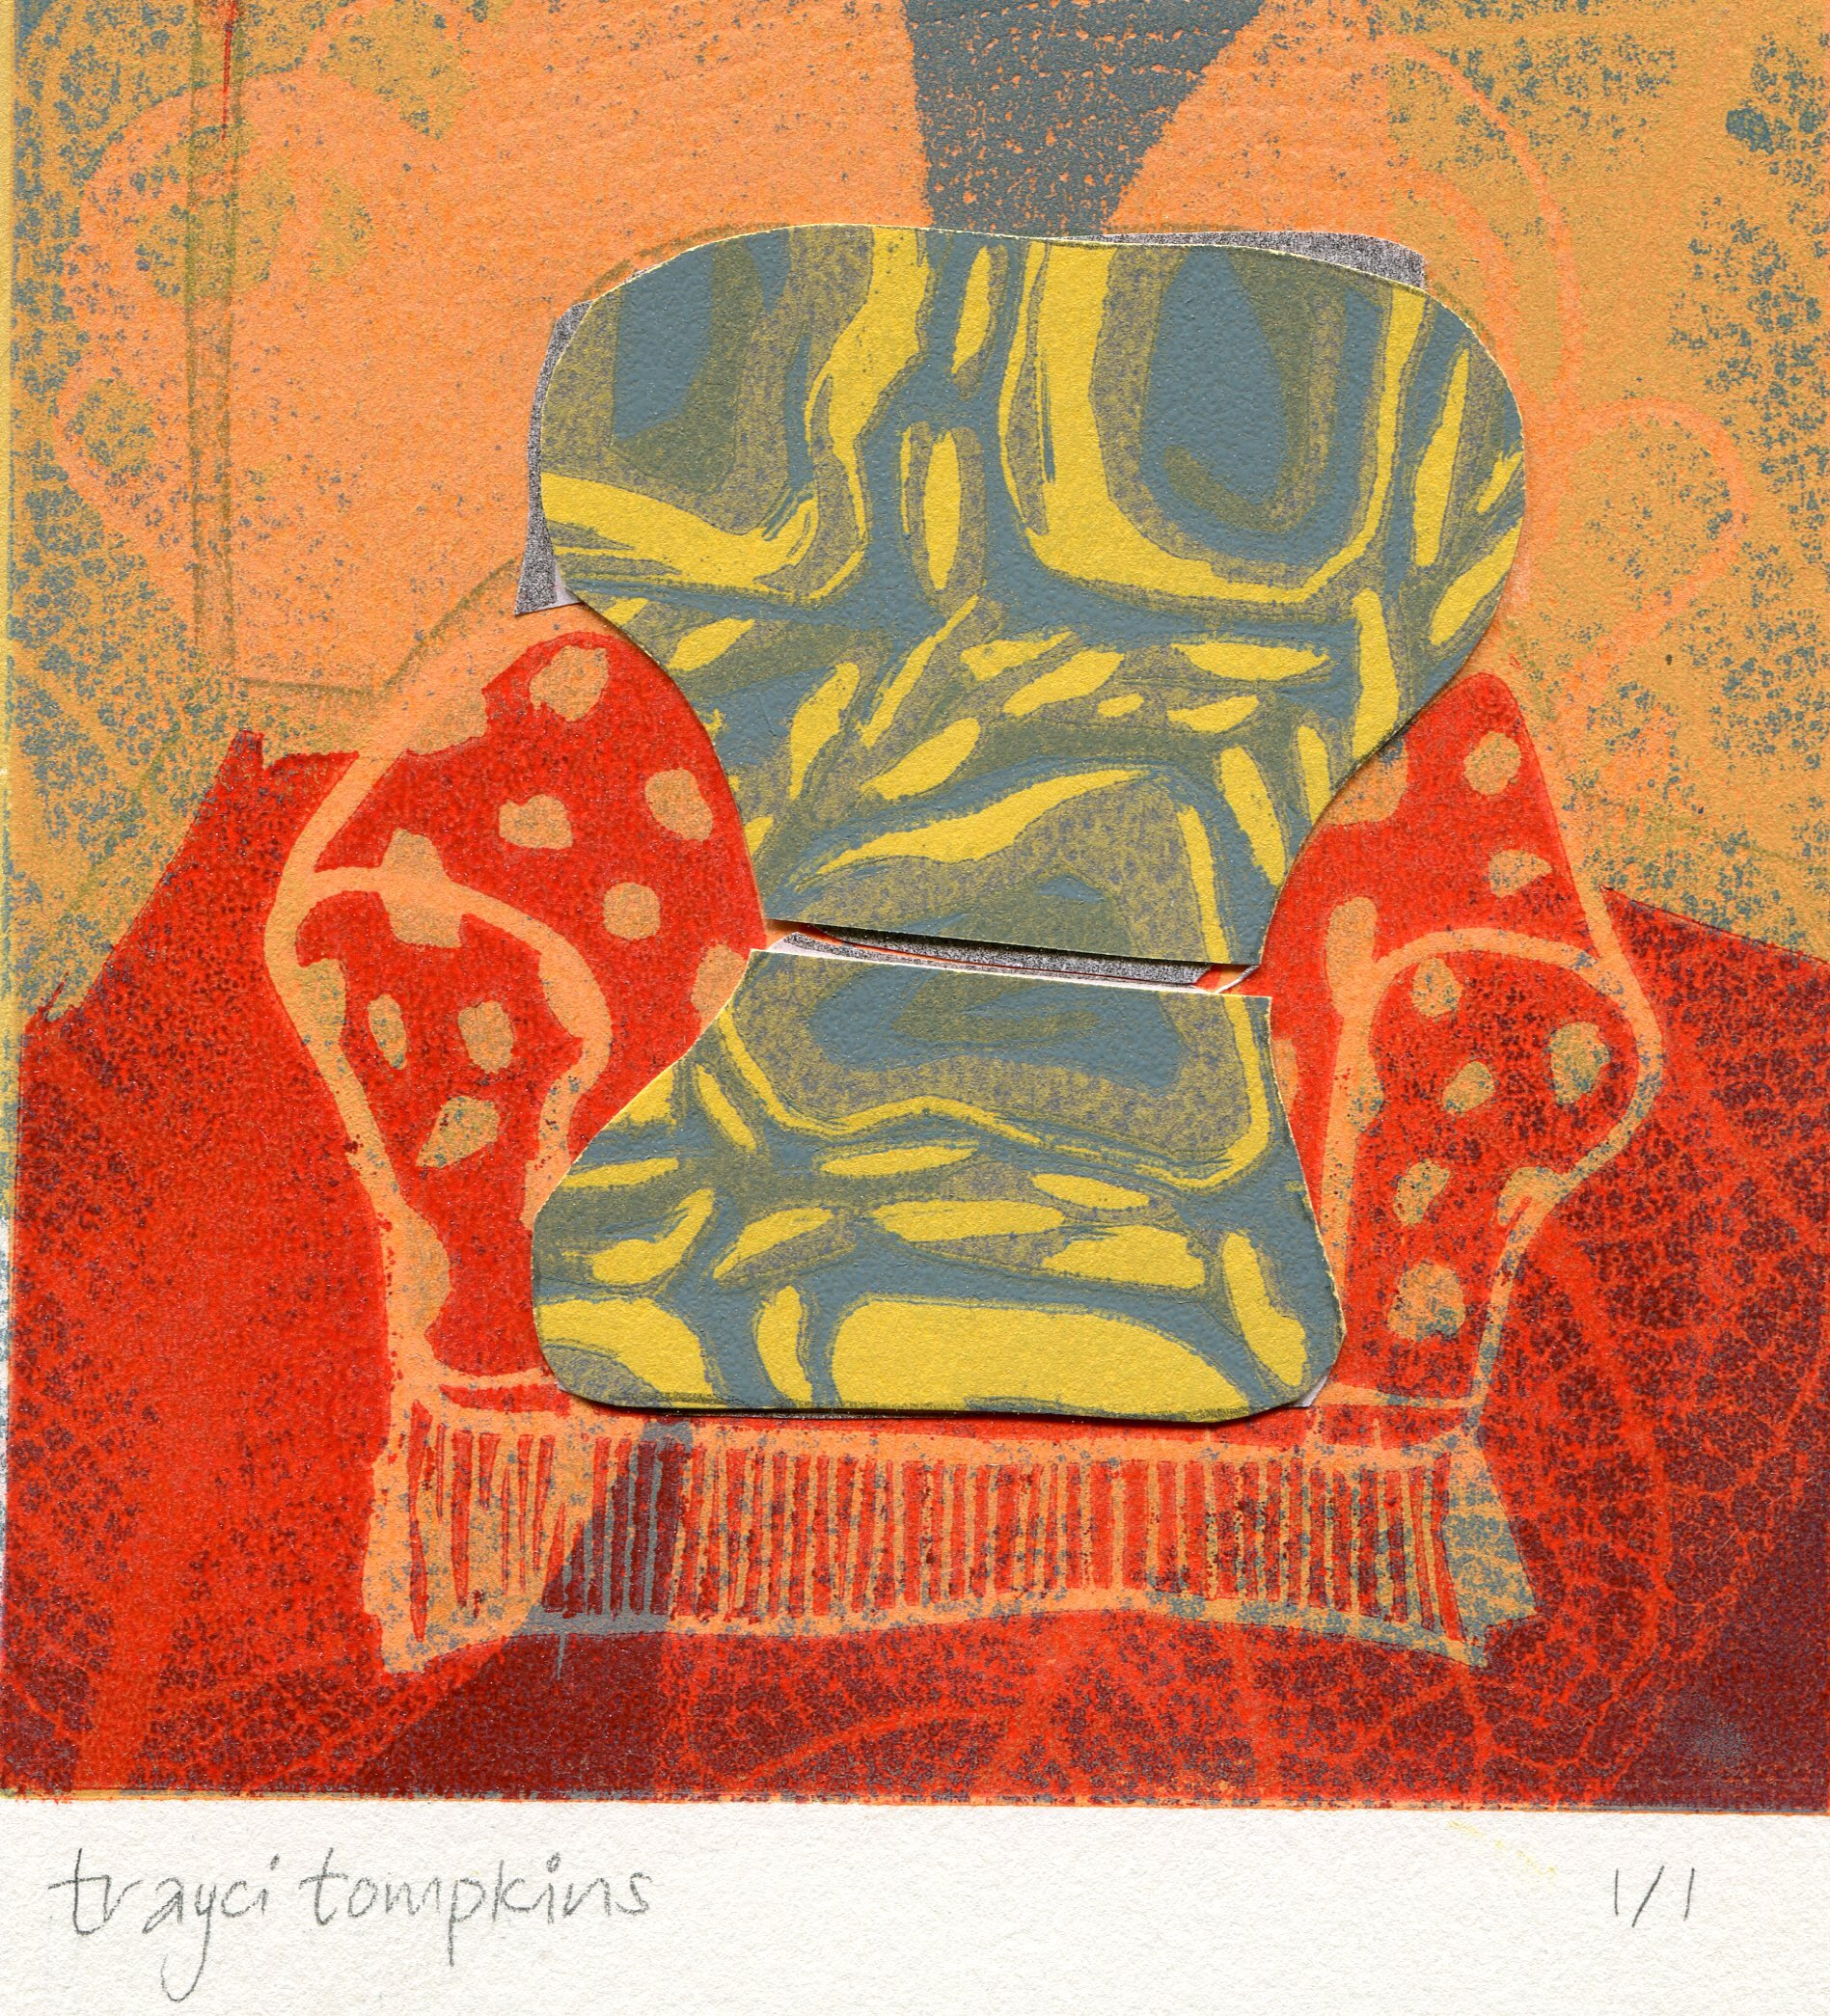 71b  Trayci Tompkins  Surrey chair 2  lino cut relief print and chine colle` on paper